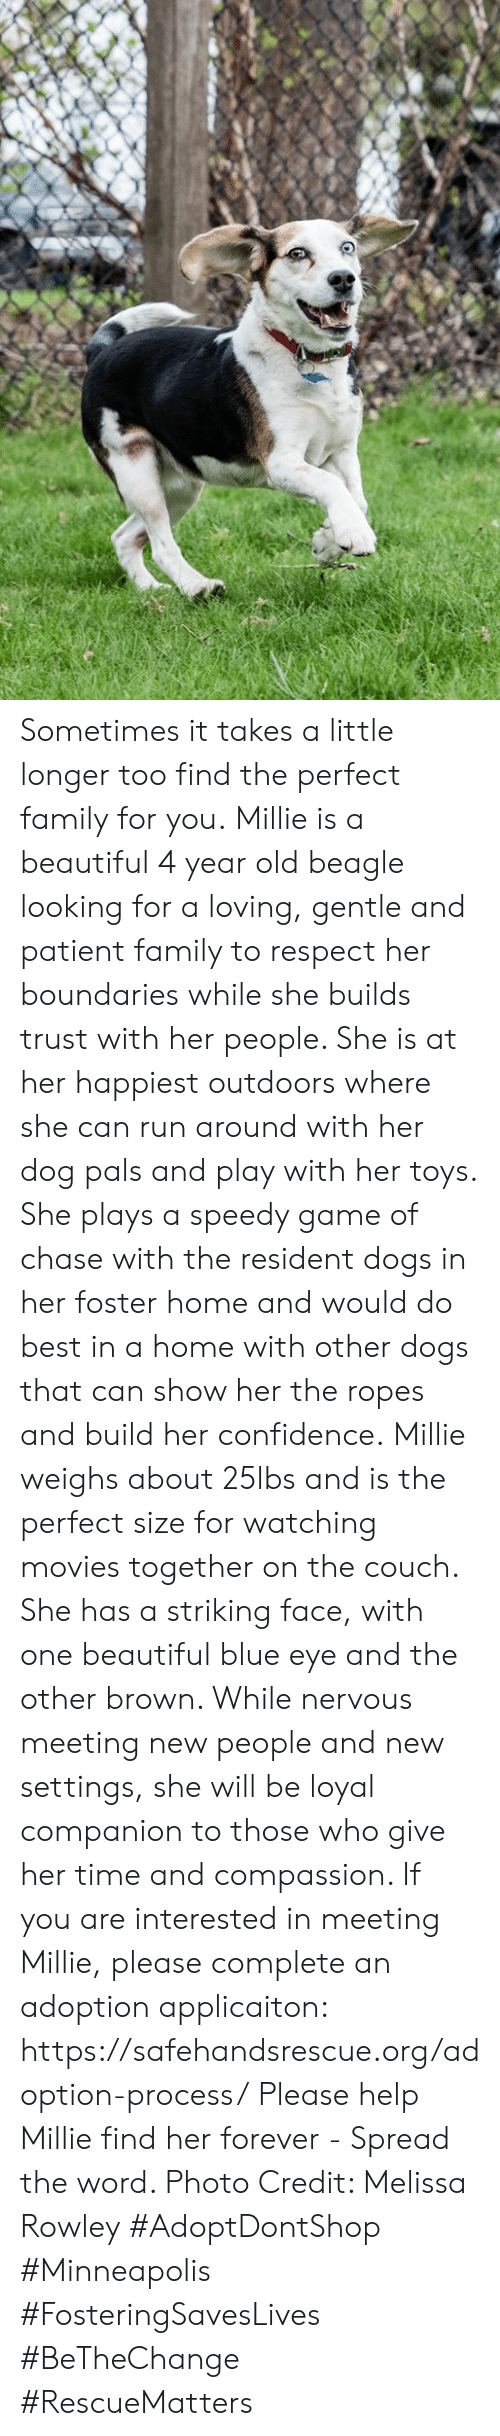 Beautiful, Confidence, and Dogs: Sometimes it takes a little longer too find the perfect family for you.  Millie is a beautiful 4 year old beagle looking for a loving, gentle and patient family to respect her boundaries while she builds trust with her people.  She is at her happiest outdoors where she can run around with her dog pals and play with her toys.  She plays a speedy game of chase with the resident dogs in her foster home and would do best in a home with other dogs that can show her the ropes and build her confidence.  Millie weighs about 25lbs and is the perfect size for watching movies together on the couch.  She has a striking face, with one beautiful blue eye and the other brown. While nervous meeting new people and new settings, she will be loyal companion to those who give her time and compassion.   If you are interested in meeting Millie, please complete an adoption applicaiton: https://safehandsrescue.org/adoption-process/  Please help Millie find her forever - Spread the word.   Photo Credit: Melissa Rowley  #AdoptDontShop #Minneapolis #FosteringSavesLives #BeTheChange #RescueMatters